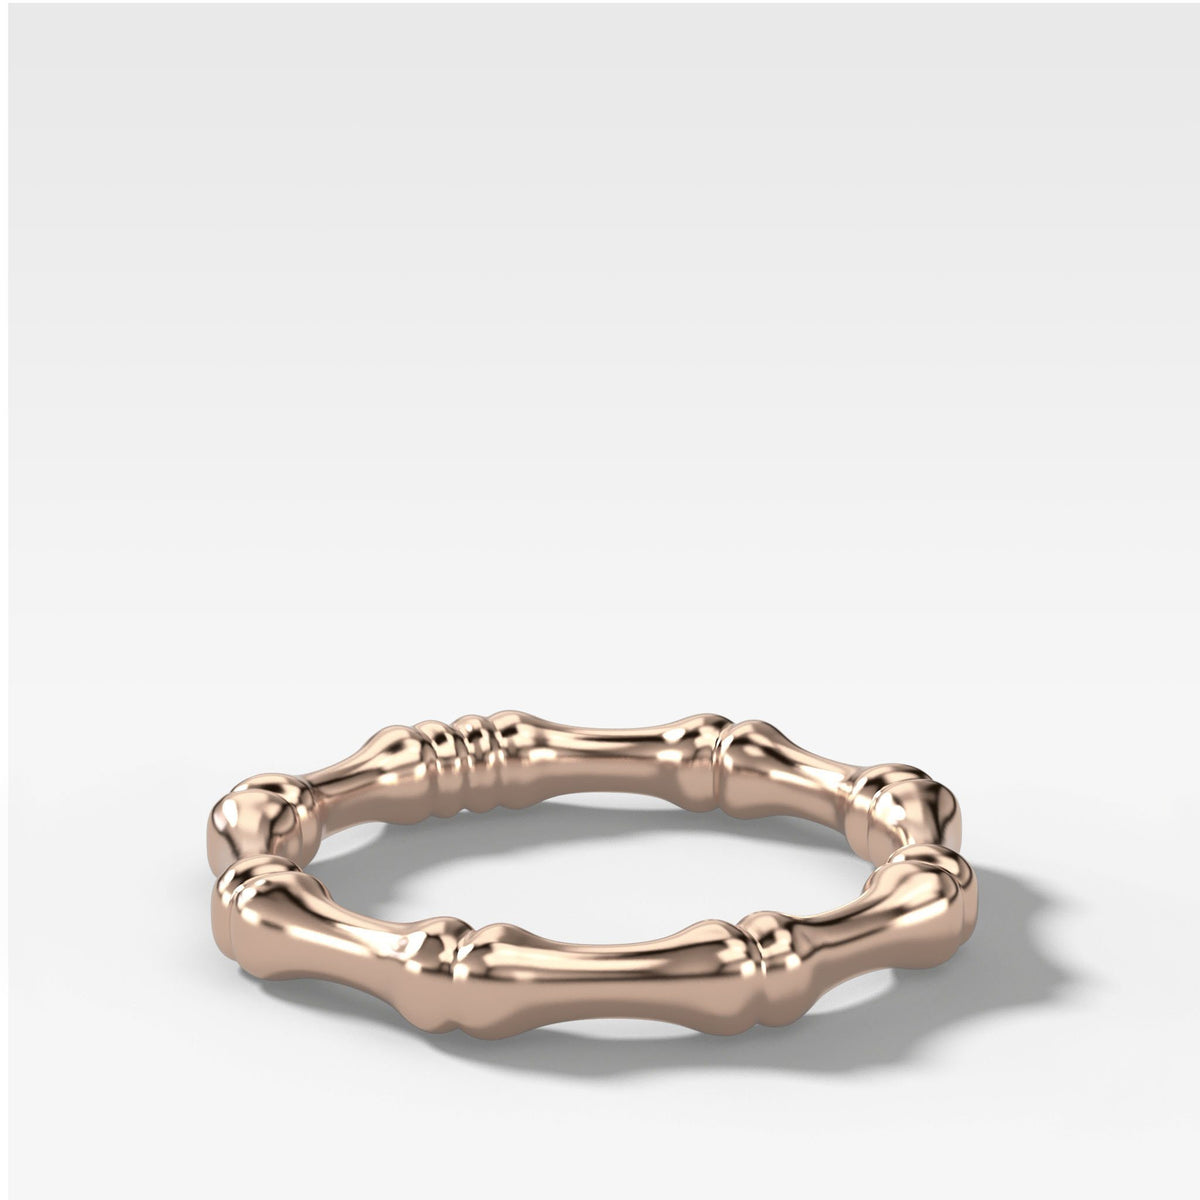 Bare Bones Stacker (3mm) Band in Rose Gold by Good Stone